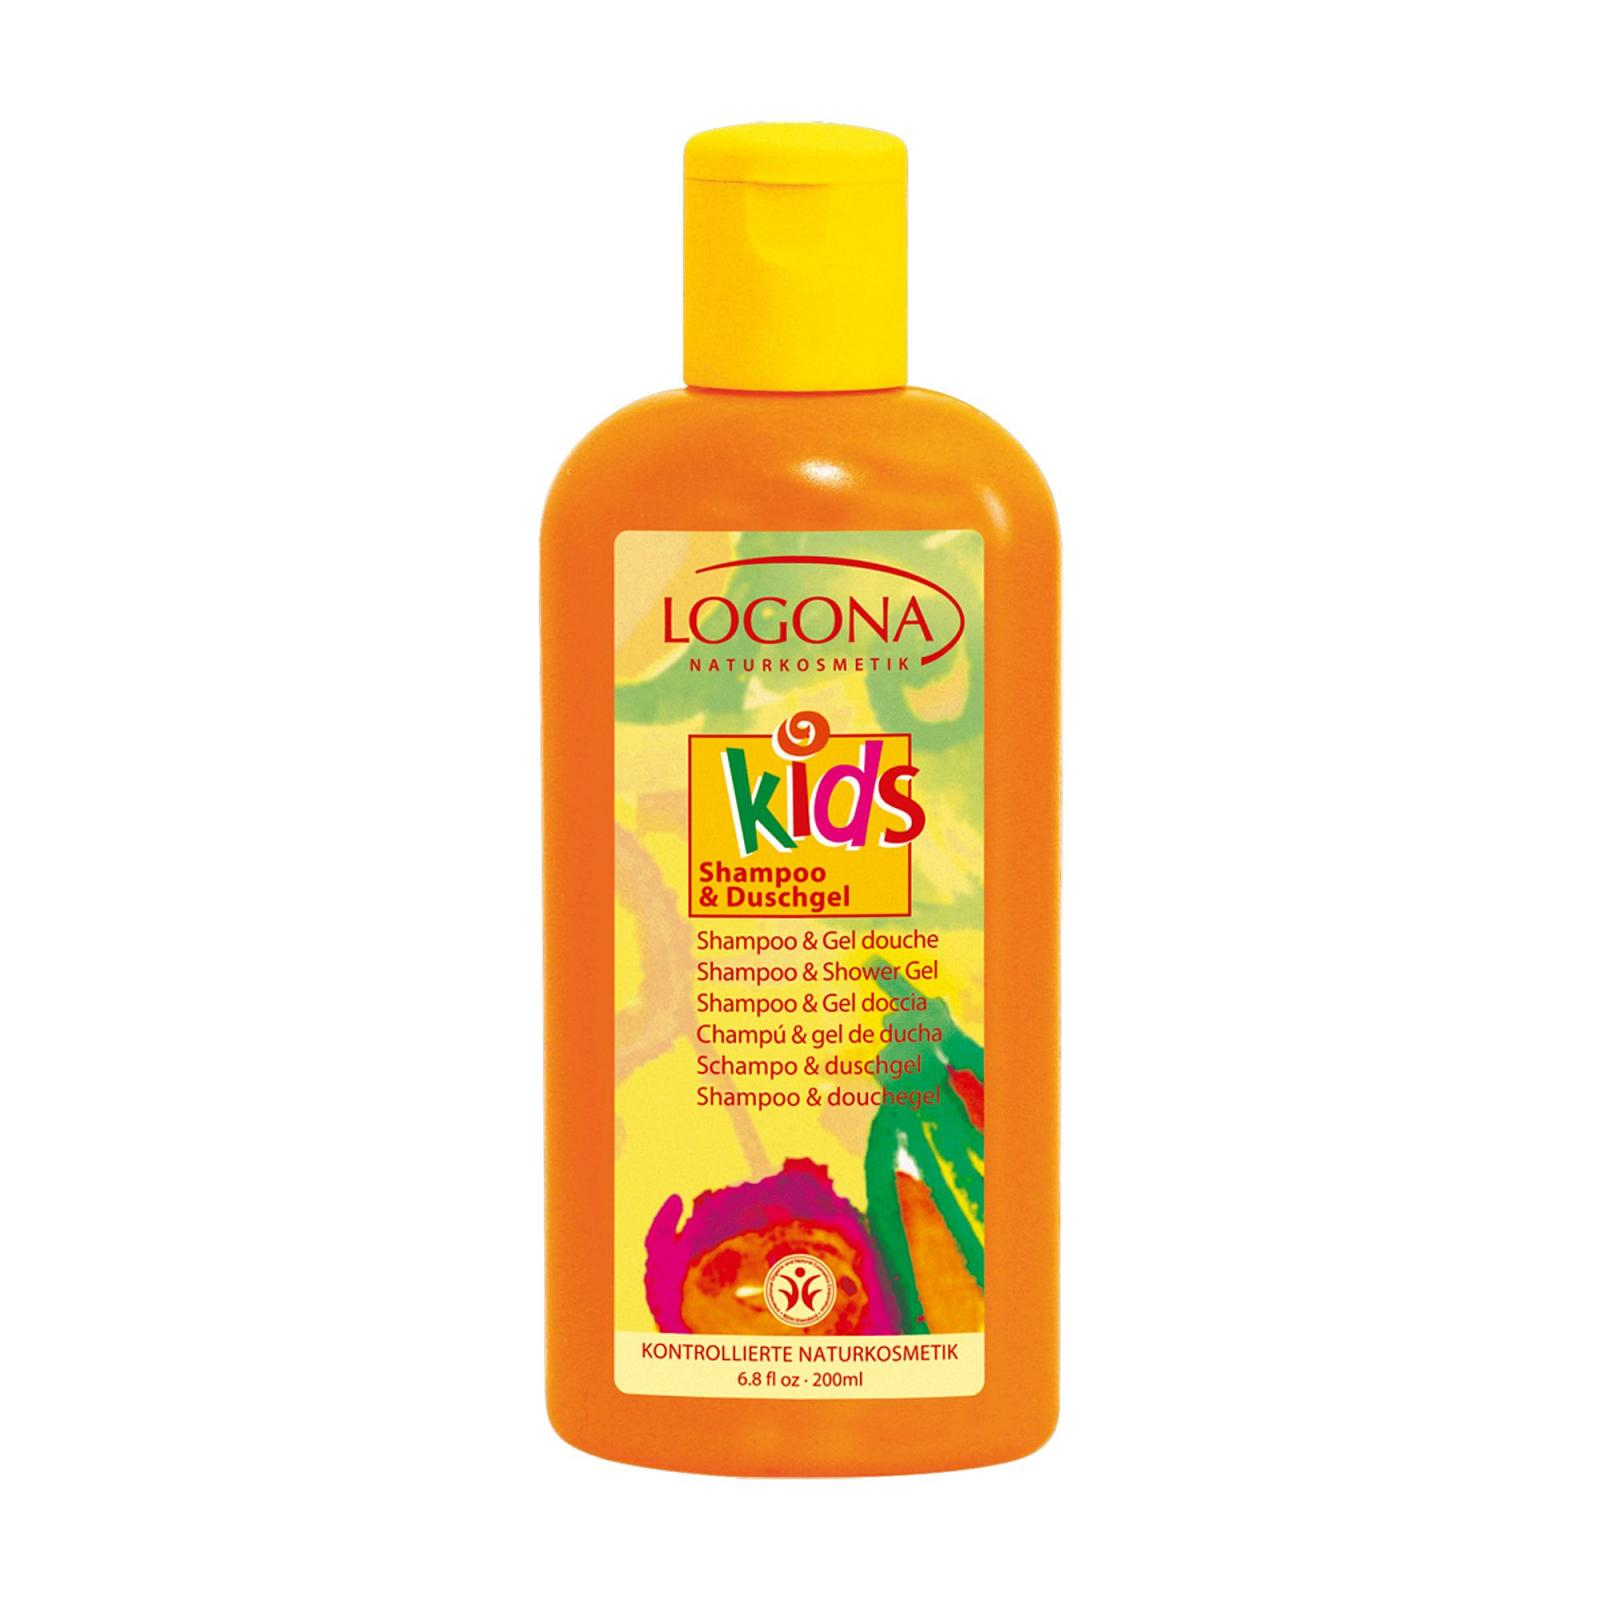 Logona Sprchový gel a šampon, Kids 200 ml